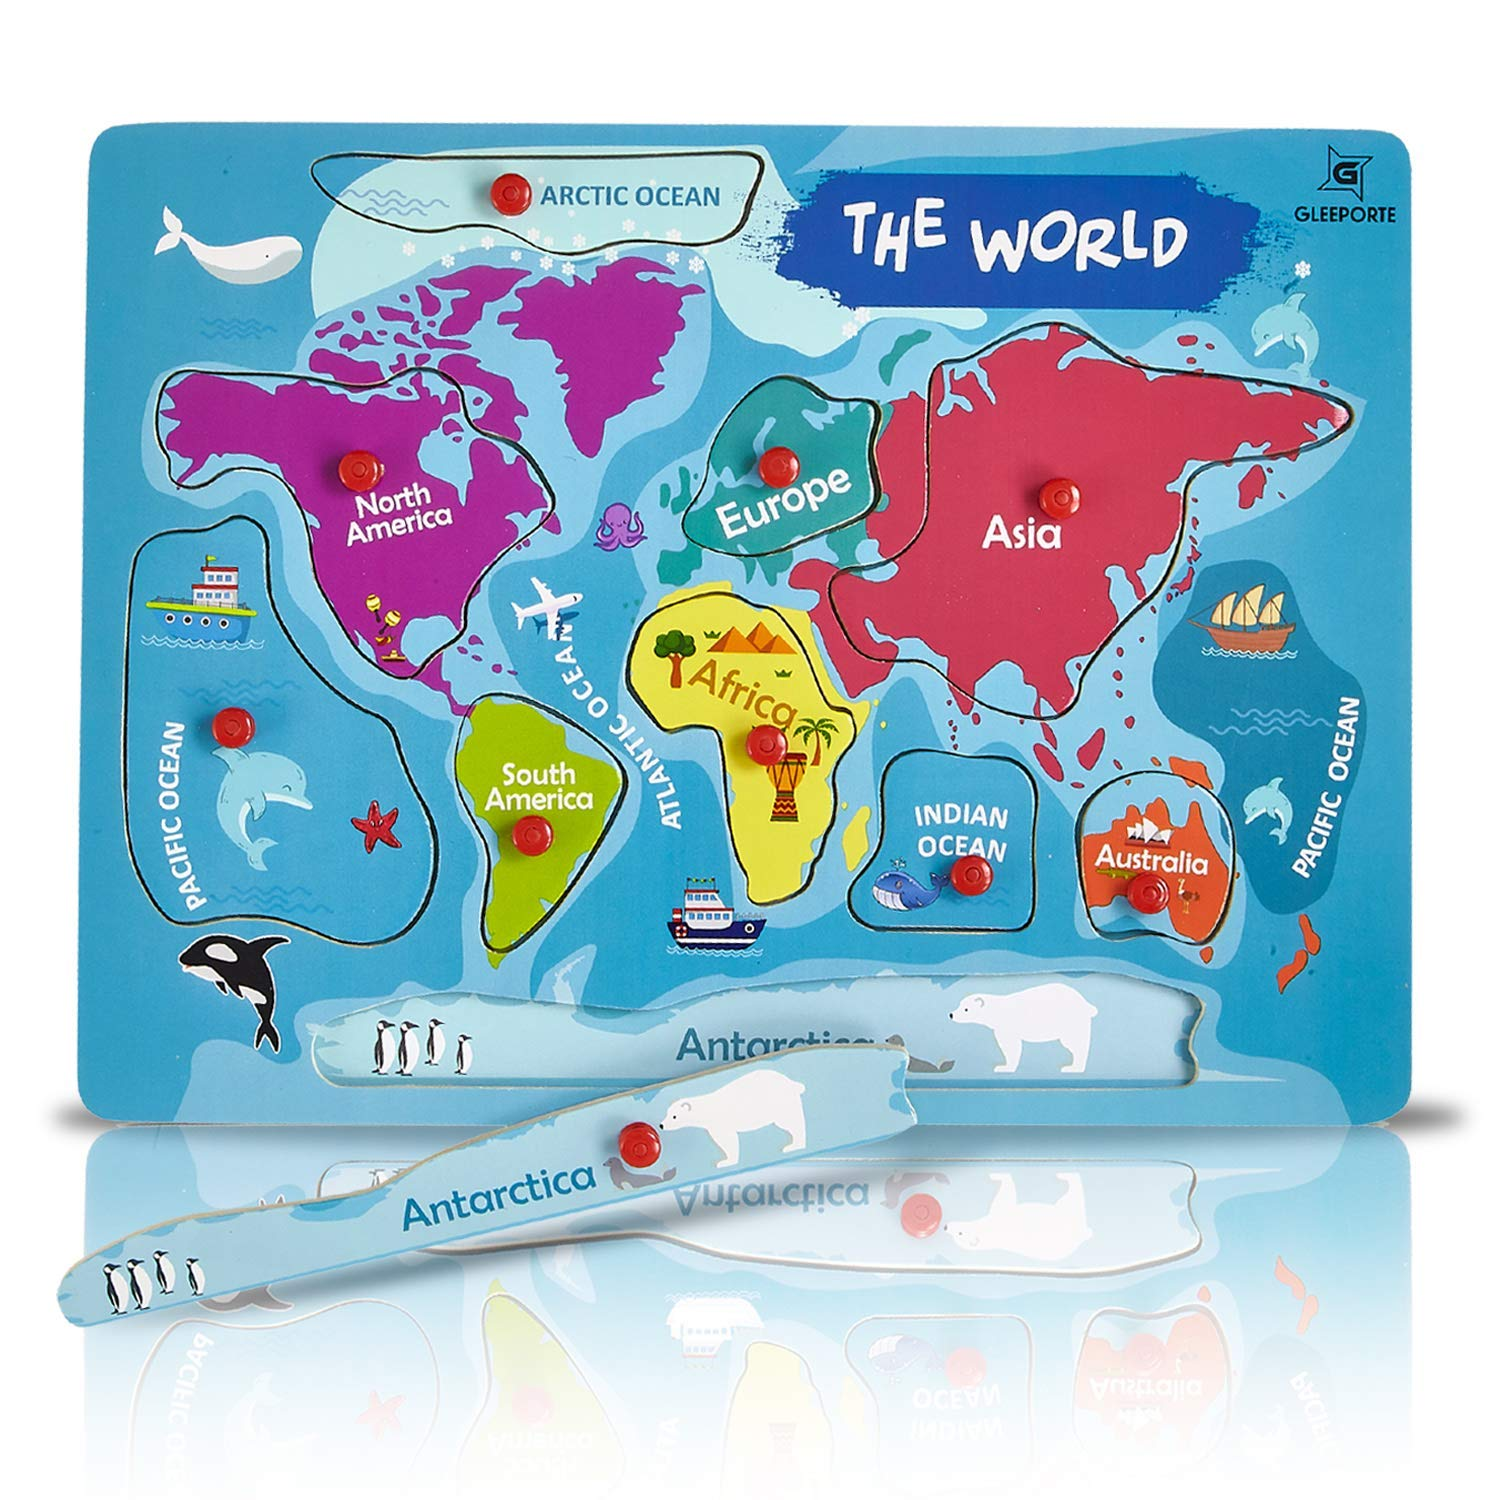 Cheap 4 Oceans Map Find 4 Oceans Map Deals On Line At